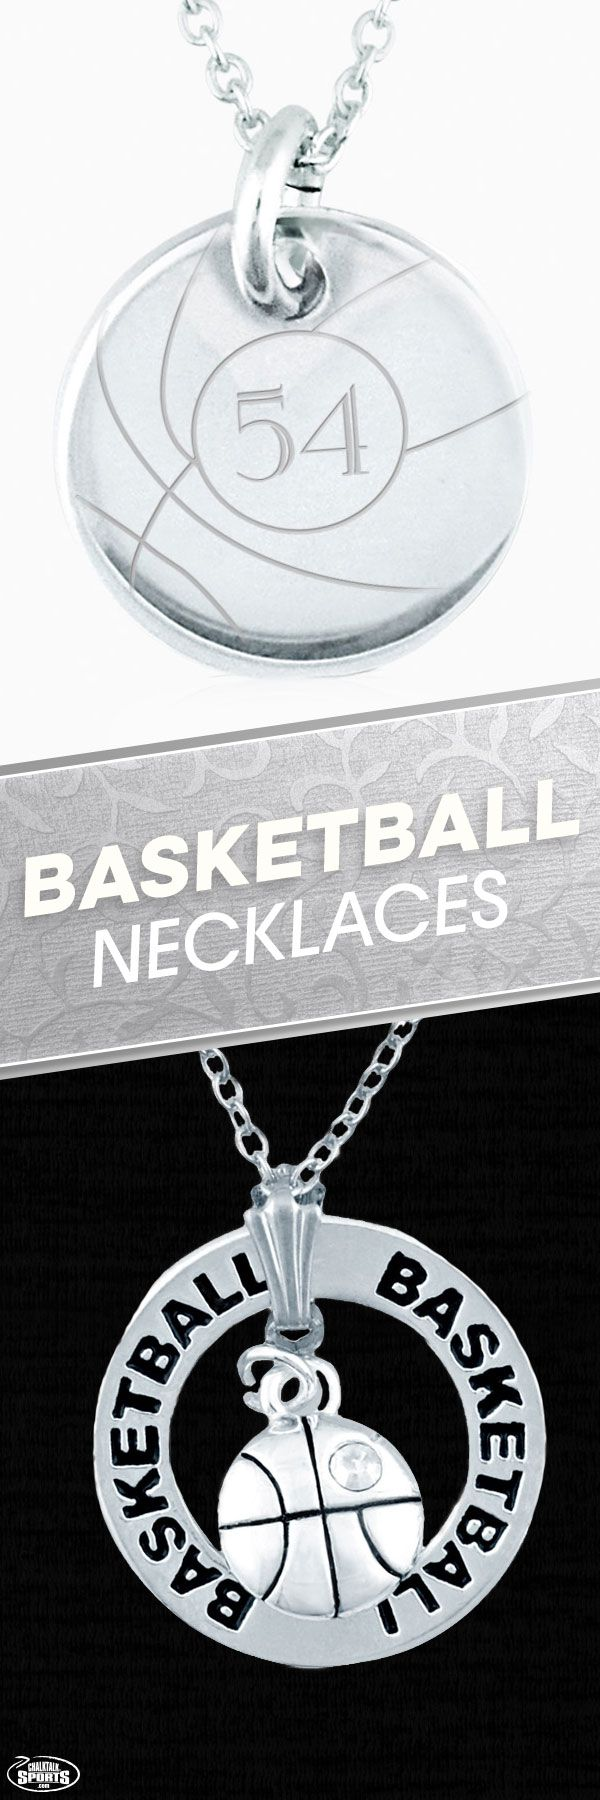 100 best basketball gifts images on pinterest basketball gifts take your love of basketball wherever you go with a sterling silver necklace personalize your basketball necklace with an engraved message or number negle Choice Image